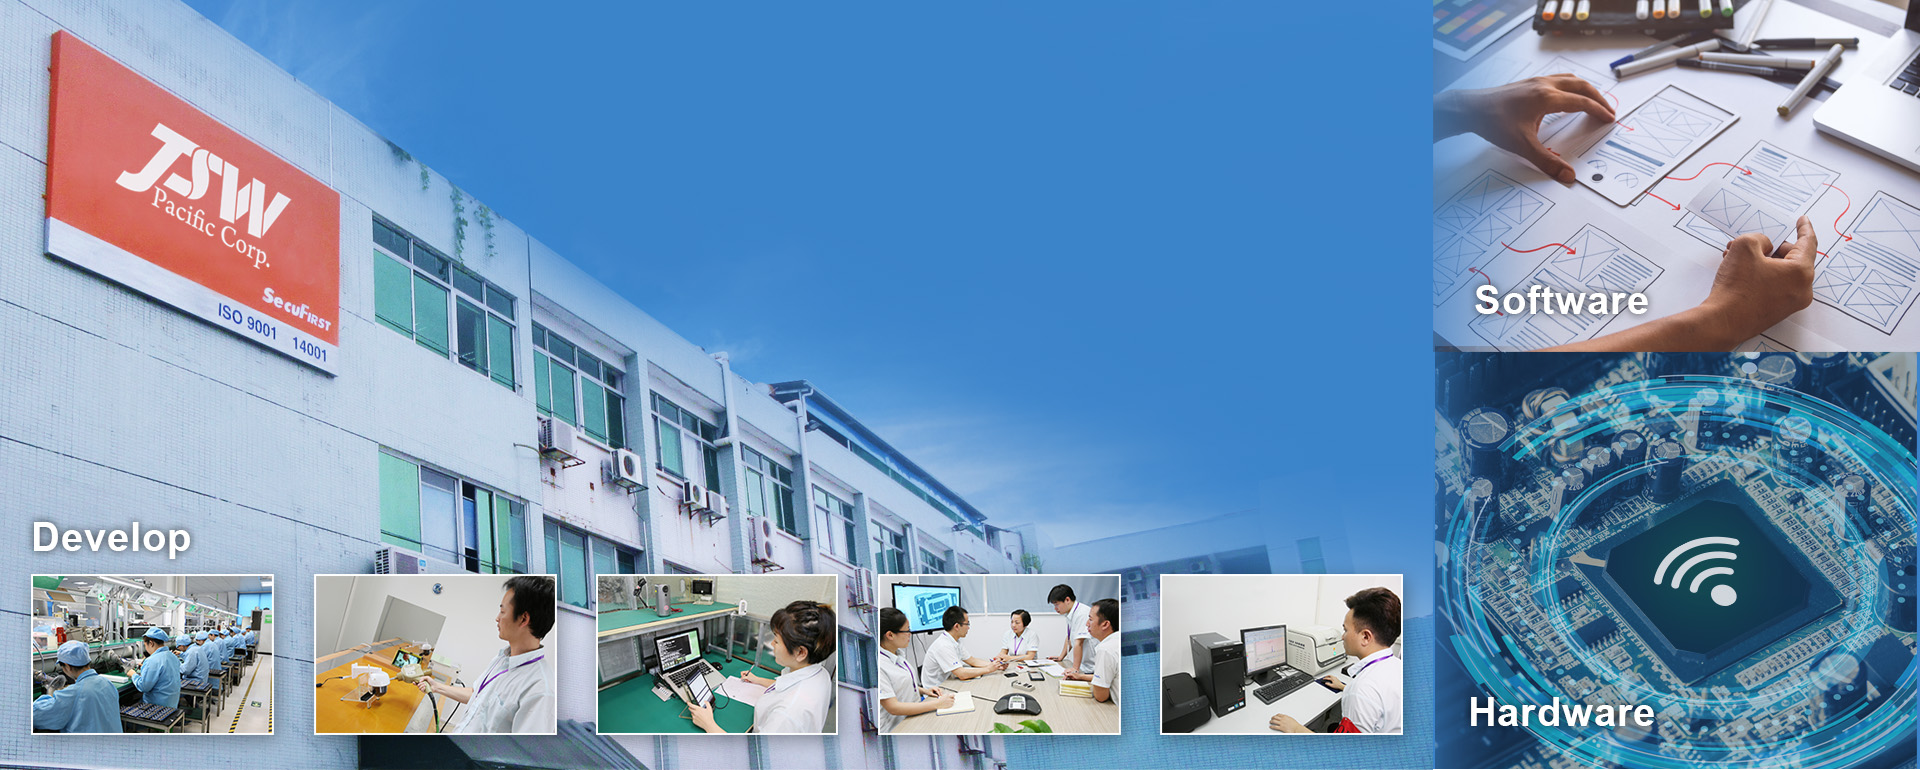 Total Solution OEM & ODM manufacturer. Hardware and software for wireless electronics. Focus on Home Security IOT.